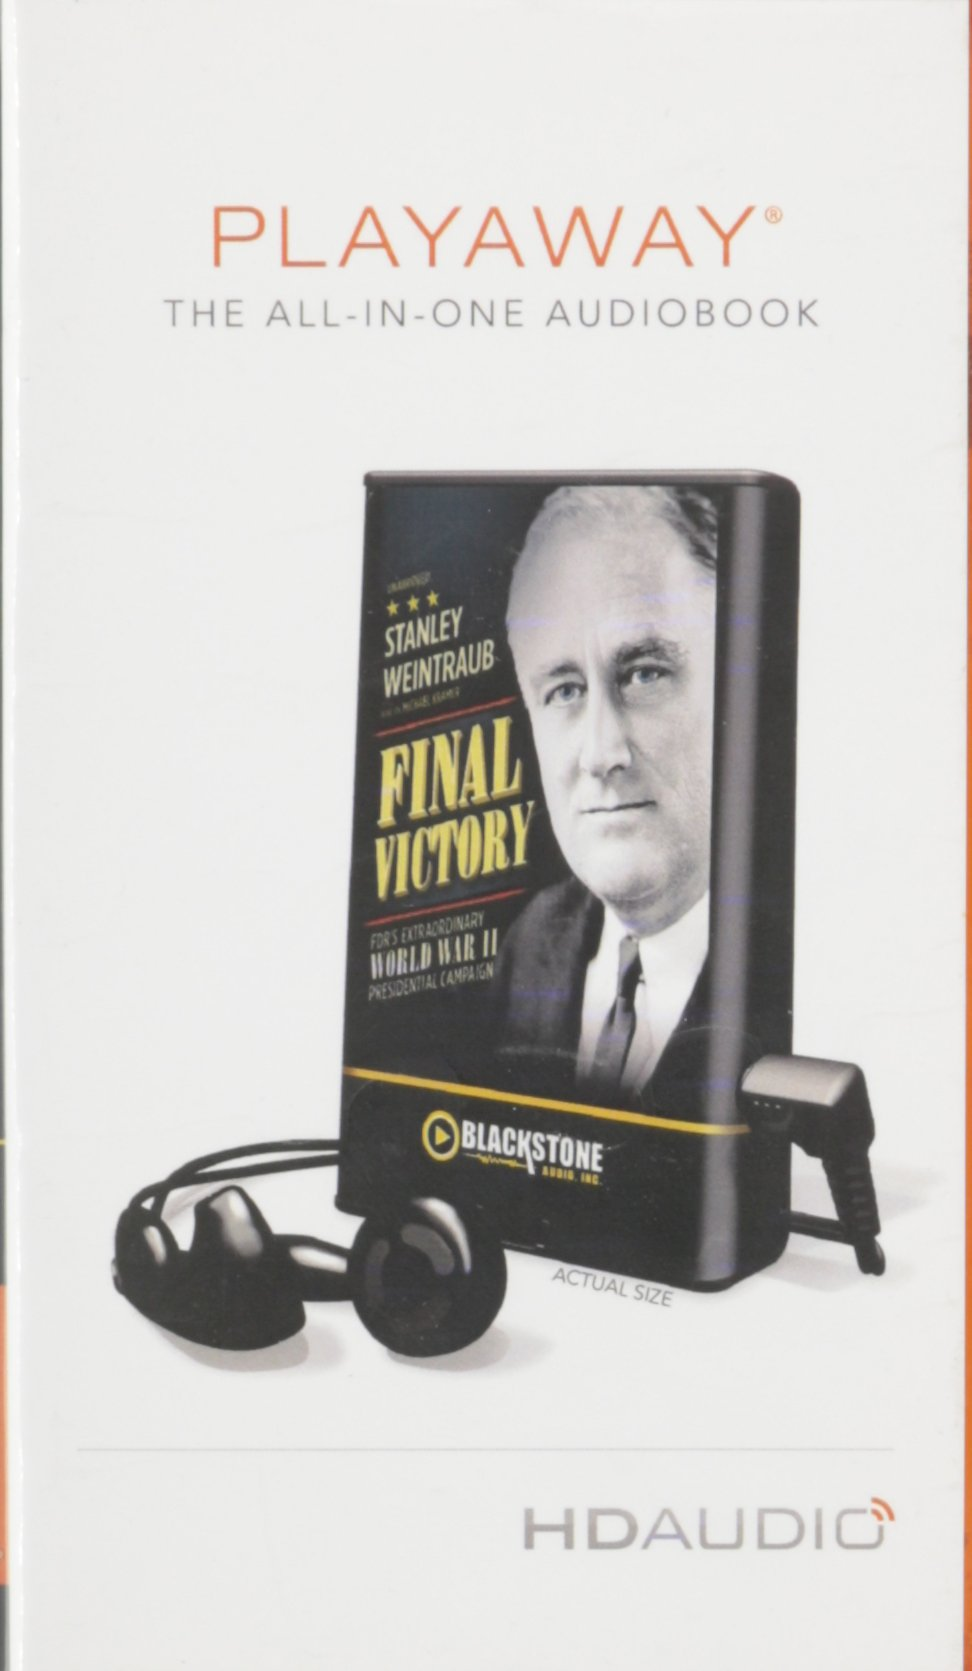 Final Victory: FDR's Remarkable World War II Presidential Campaign: Library Edition by Blackstone Audio Inc